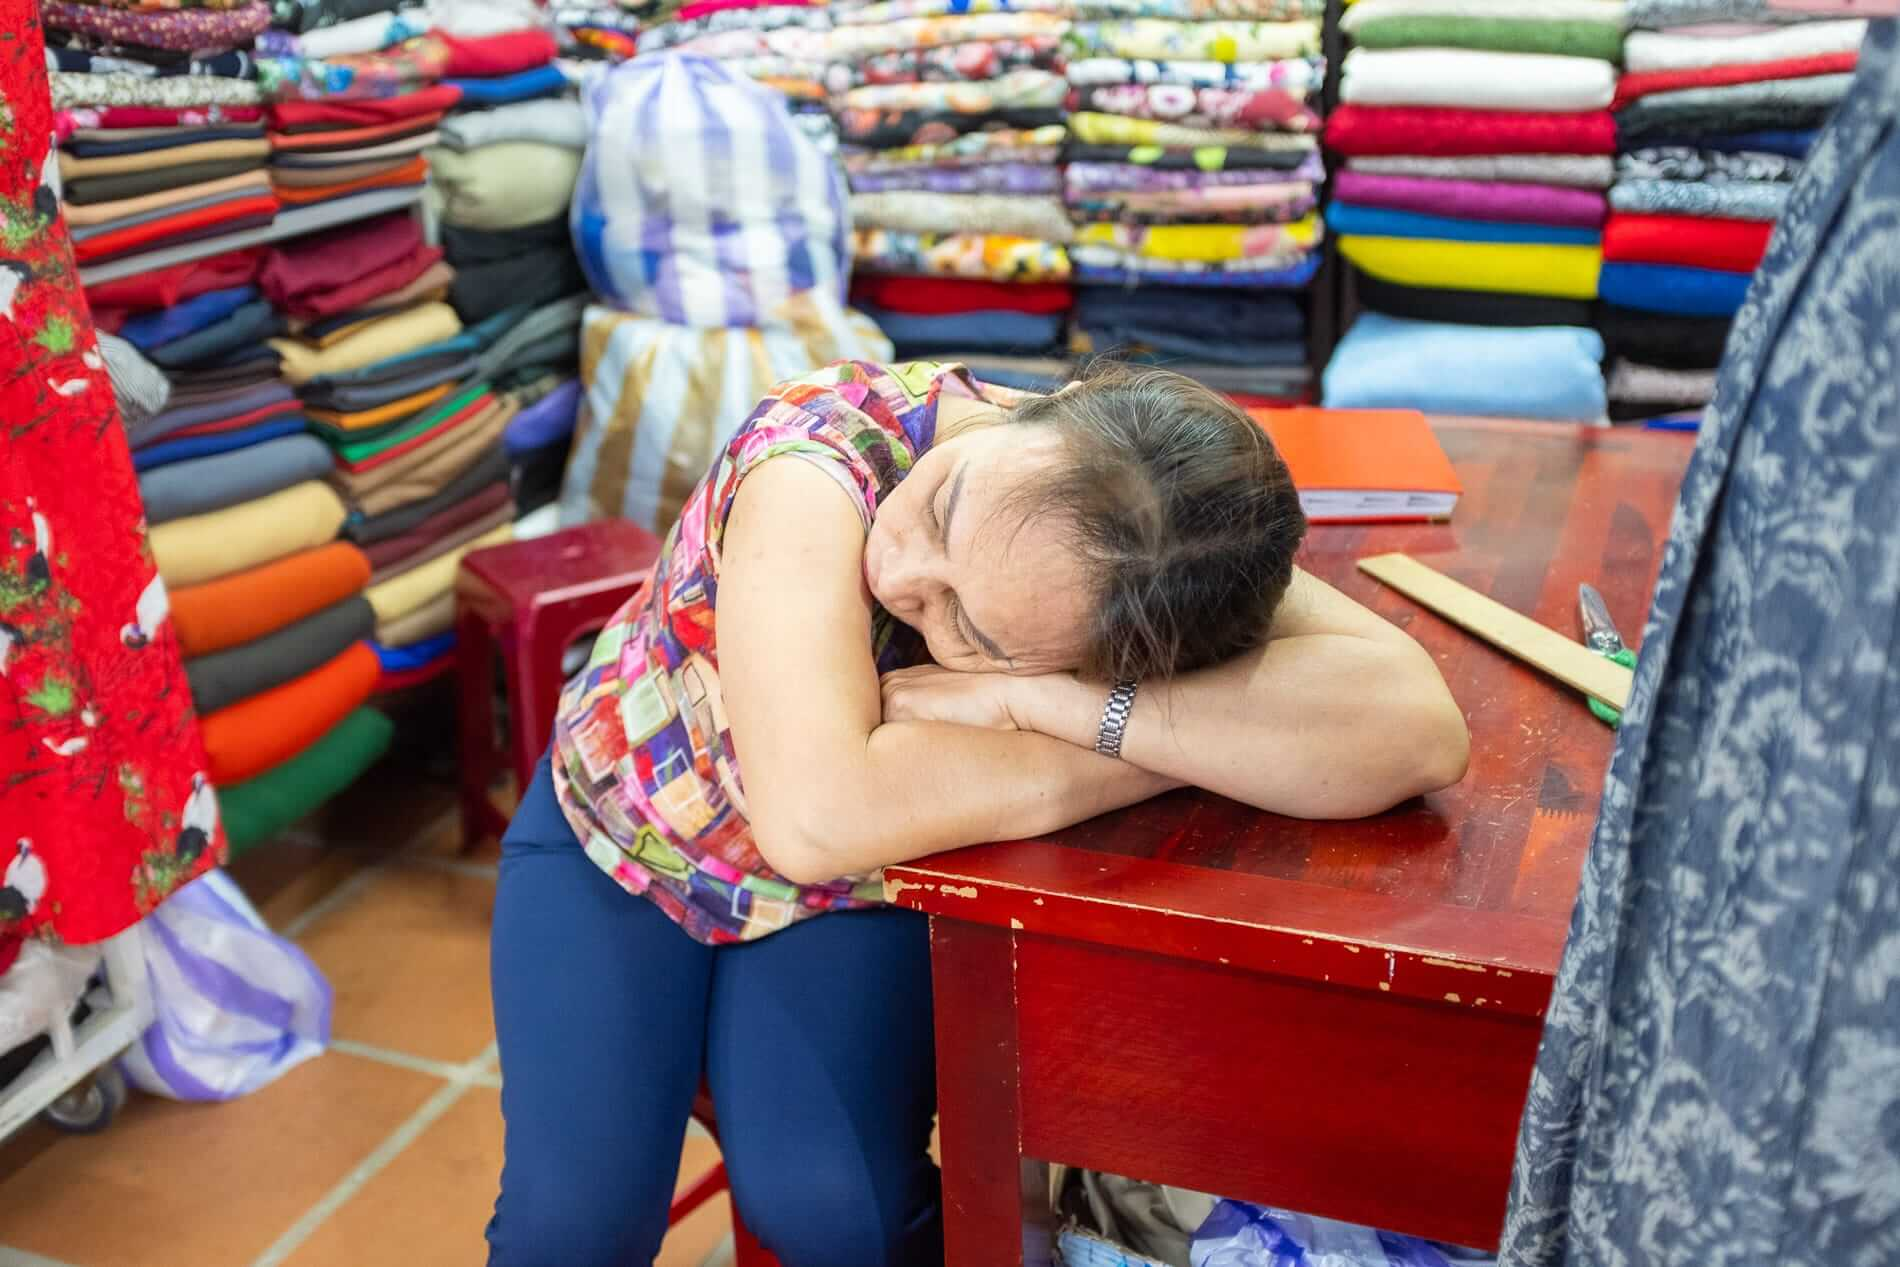 A stall holder sleeping